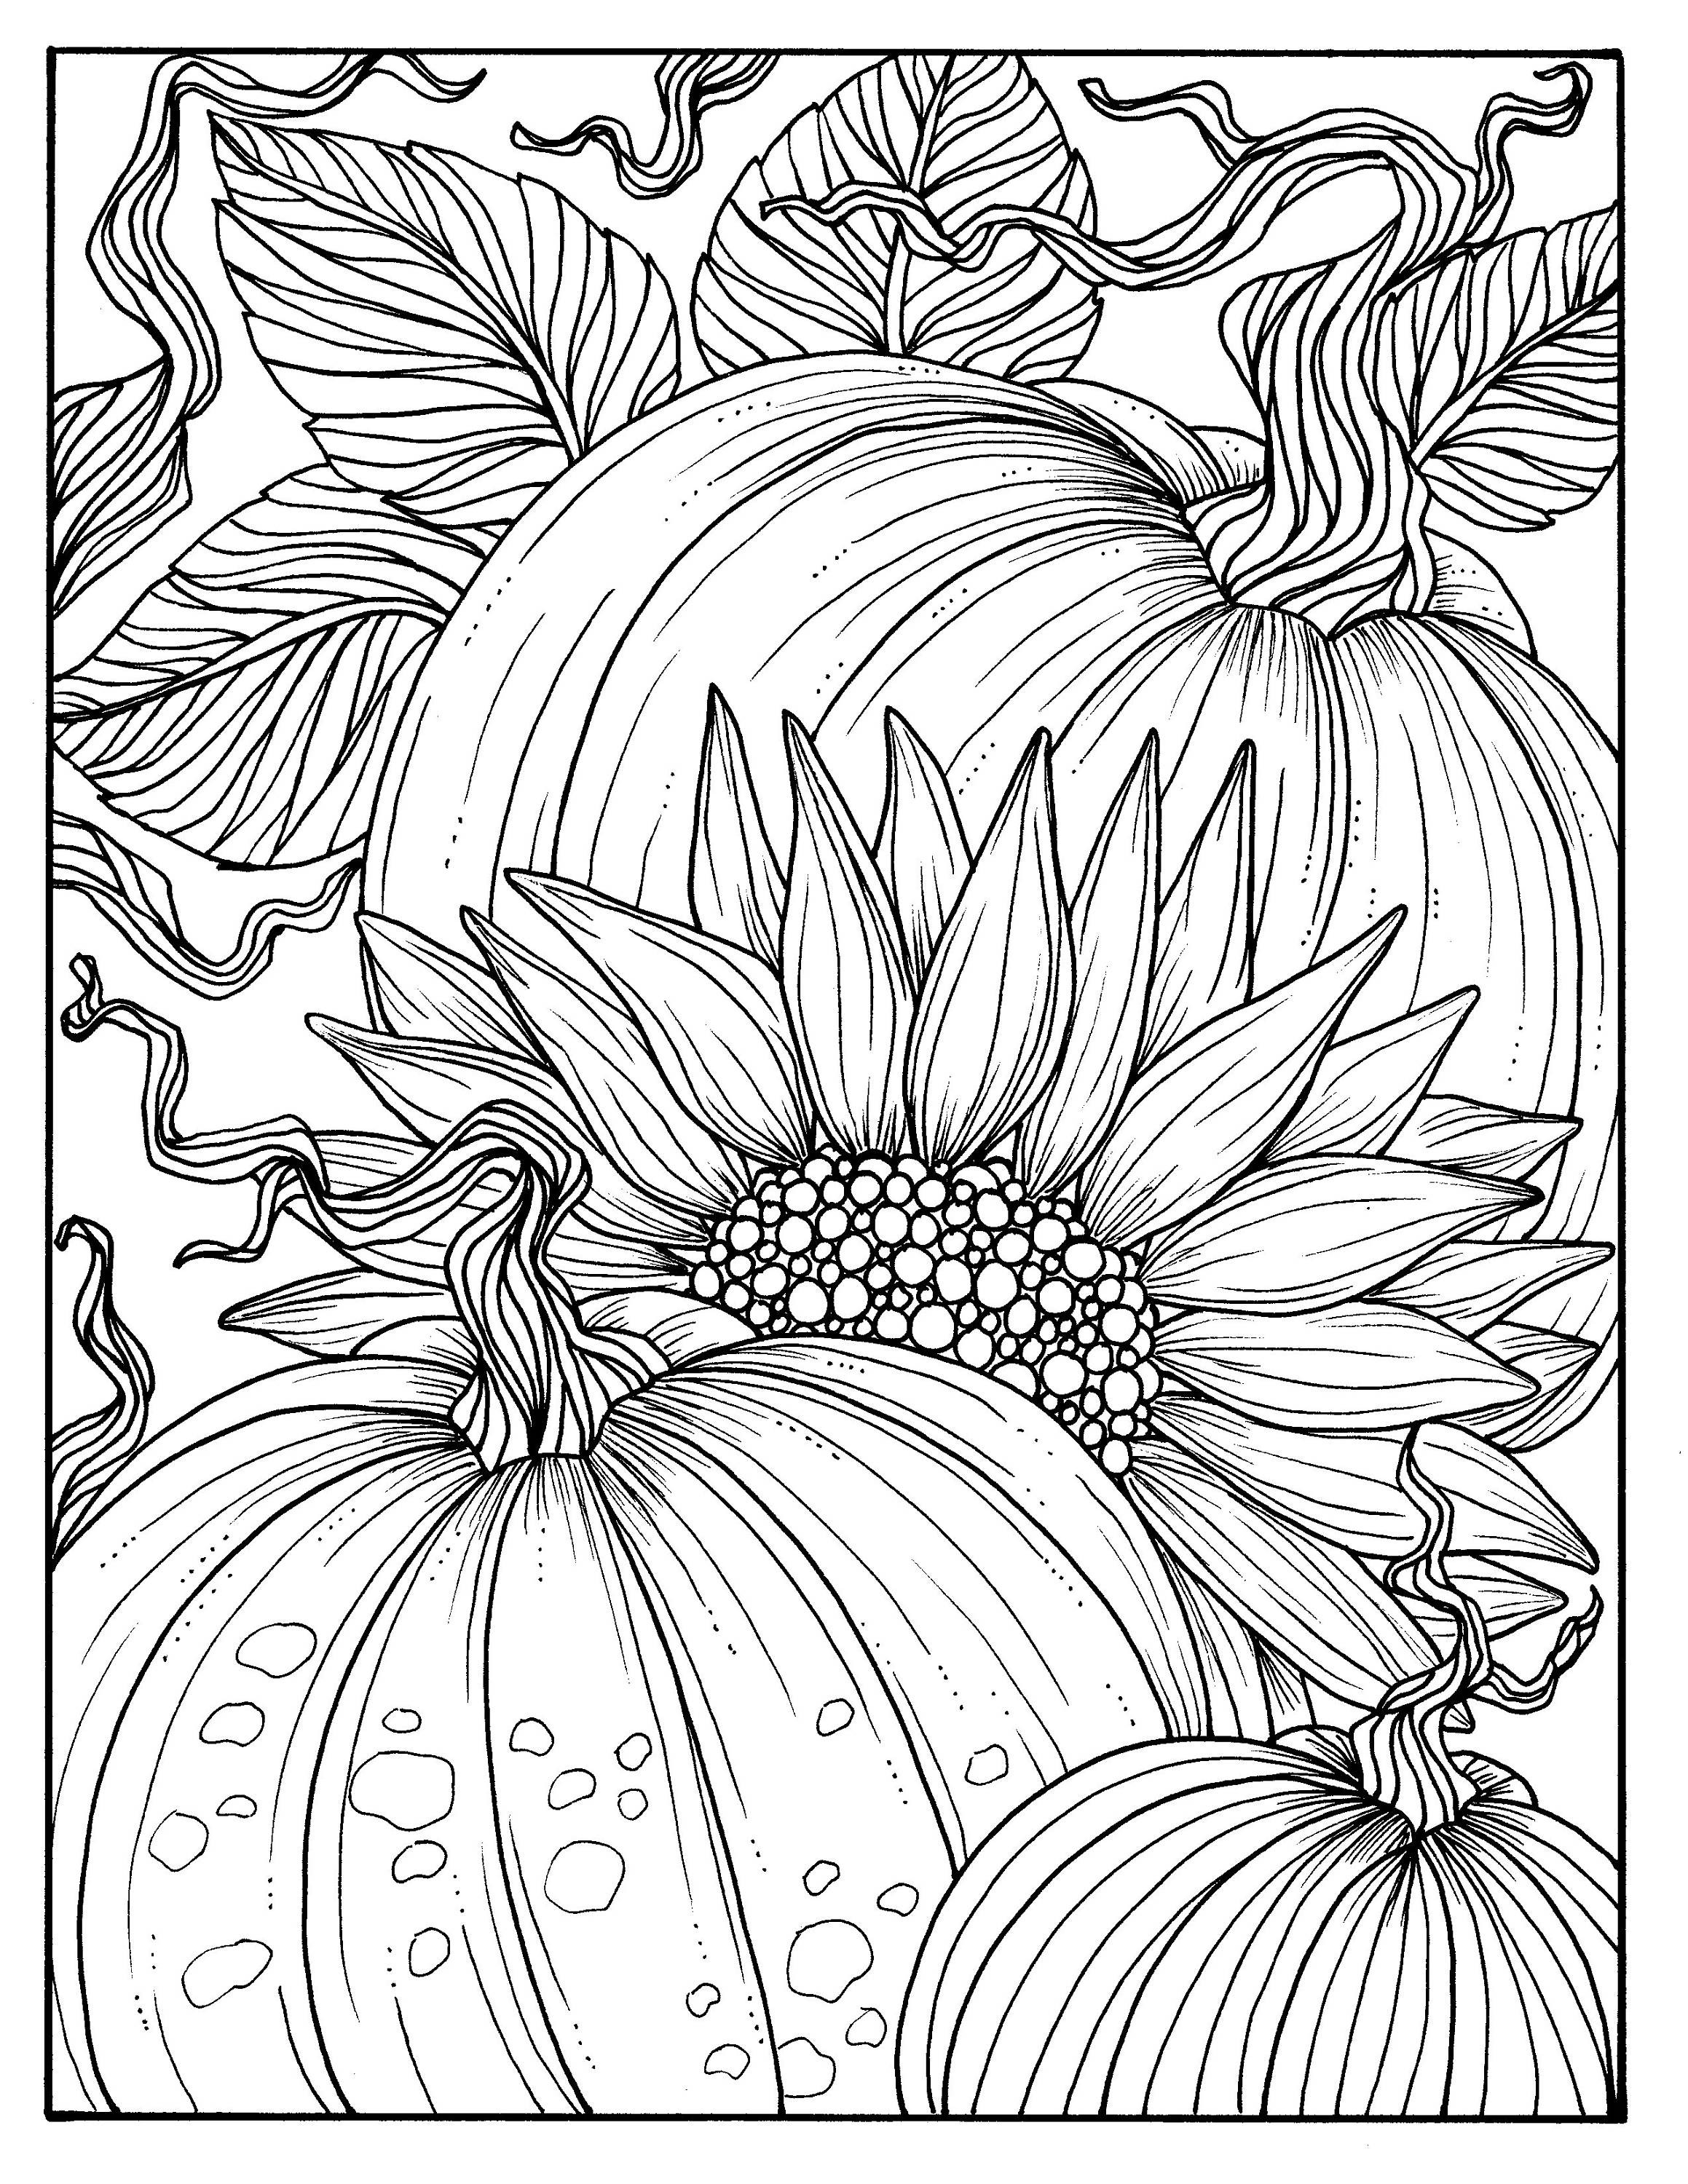 Sunflower Coloring Pages For Adults  5 Pages Fabulous Fall Digital Downloads to Color Punpkins